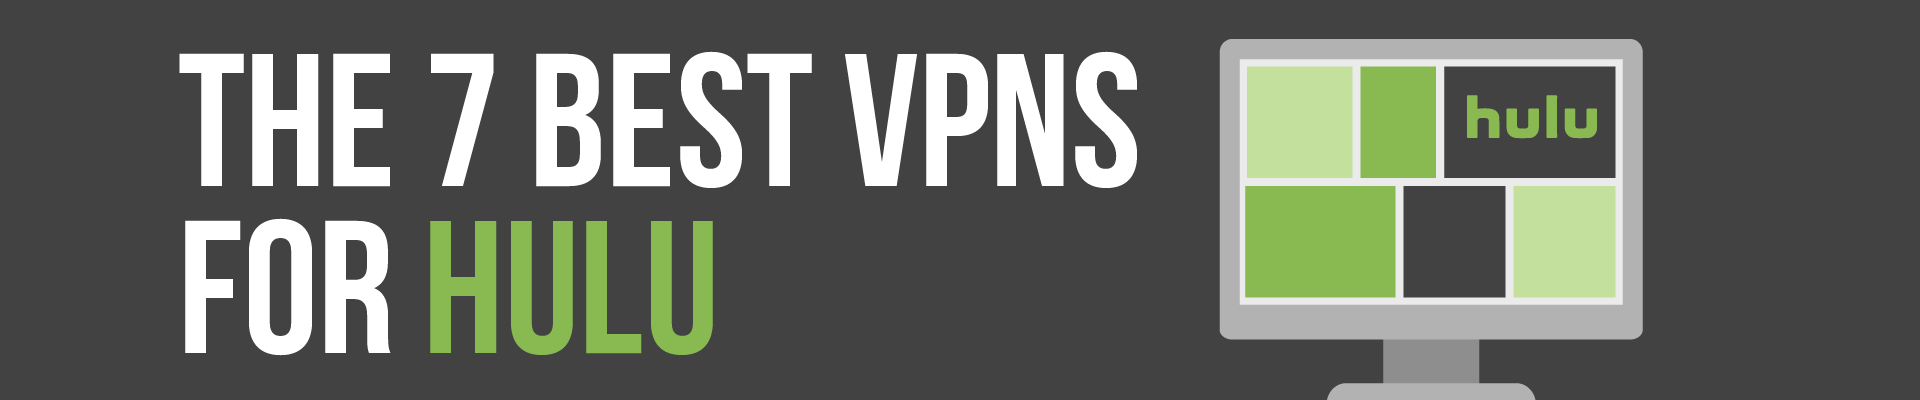 7 Best VPNs for Hulu in 2019 | BestVPN org